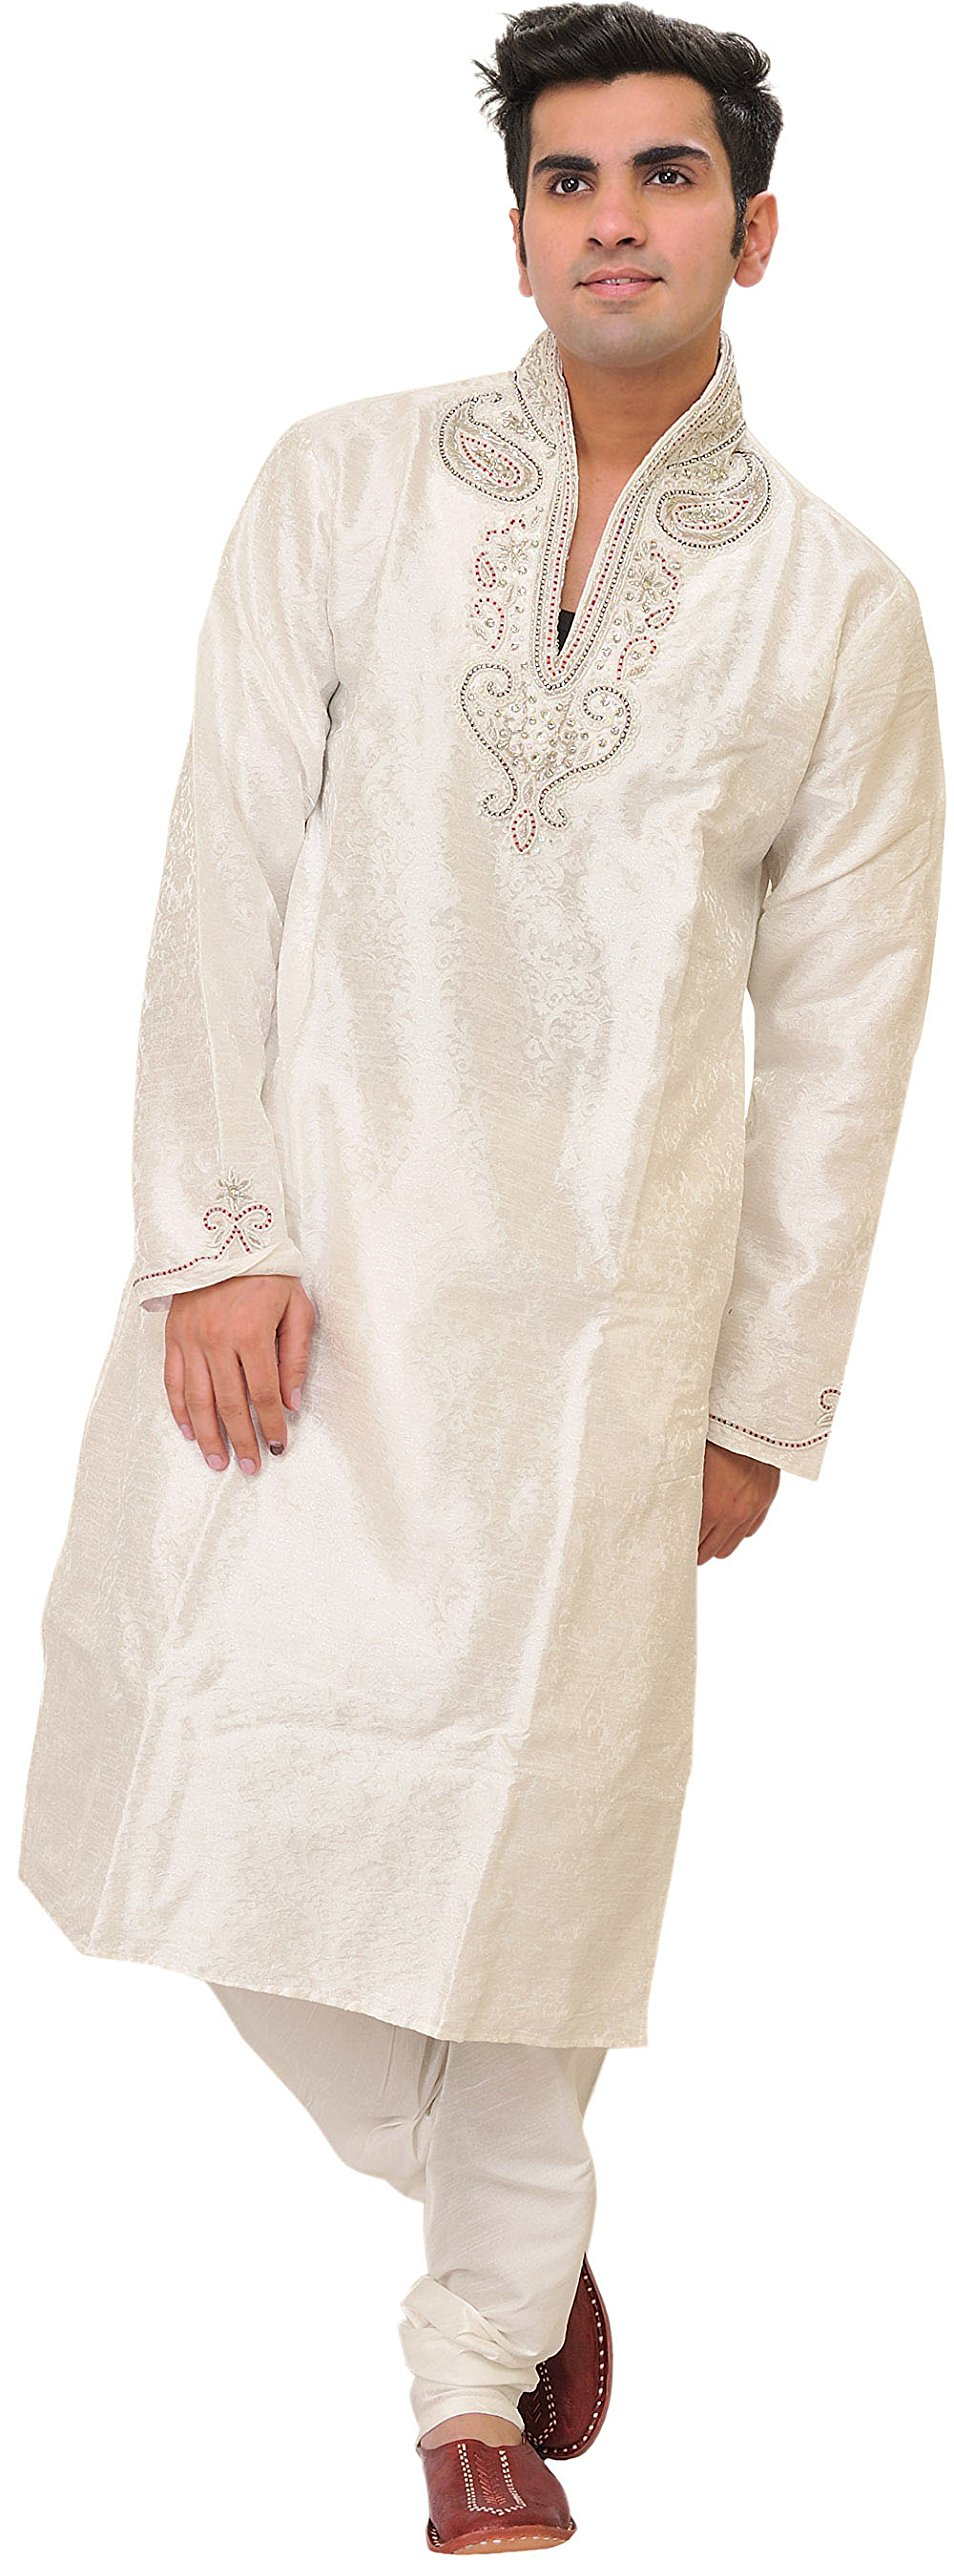 Exotic India Egret-White Wedding Kurta Pajama Set with Size 40